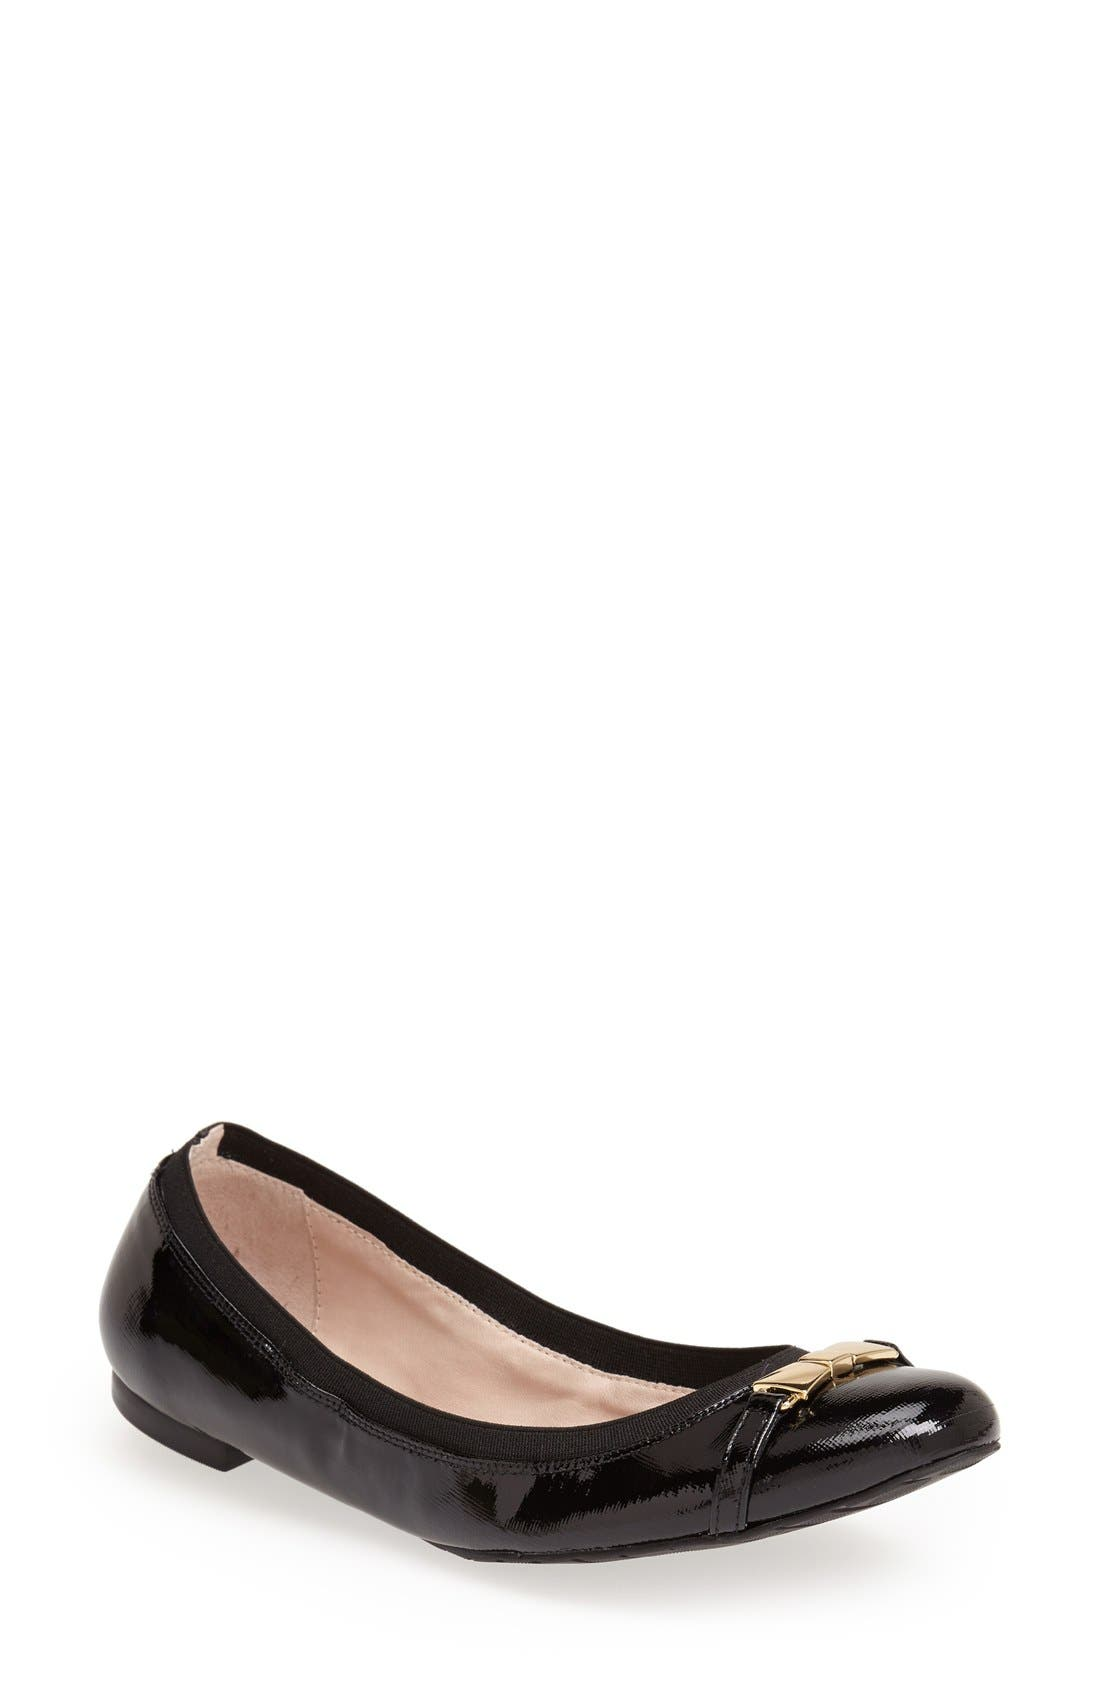 Main Image - kate spade new york 'blaine' patent leather skimmer flat (Women)